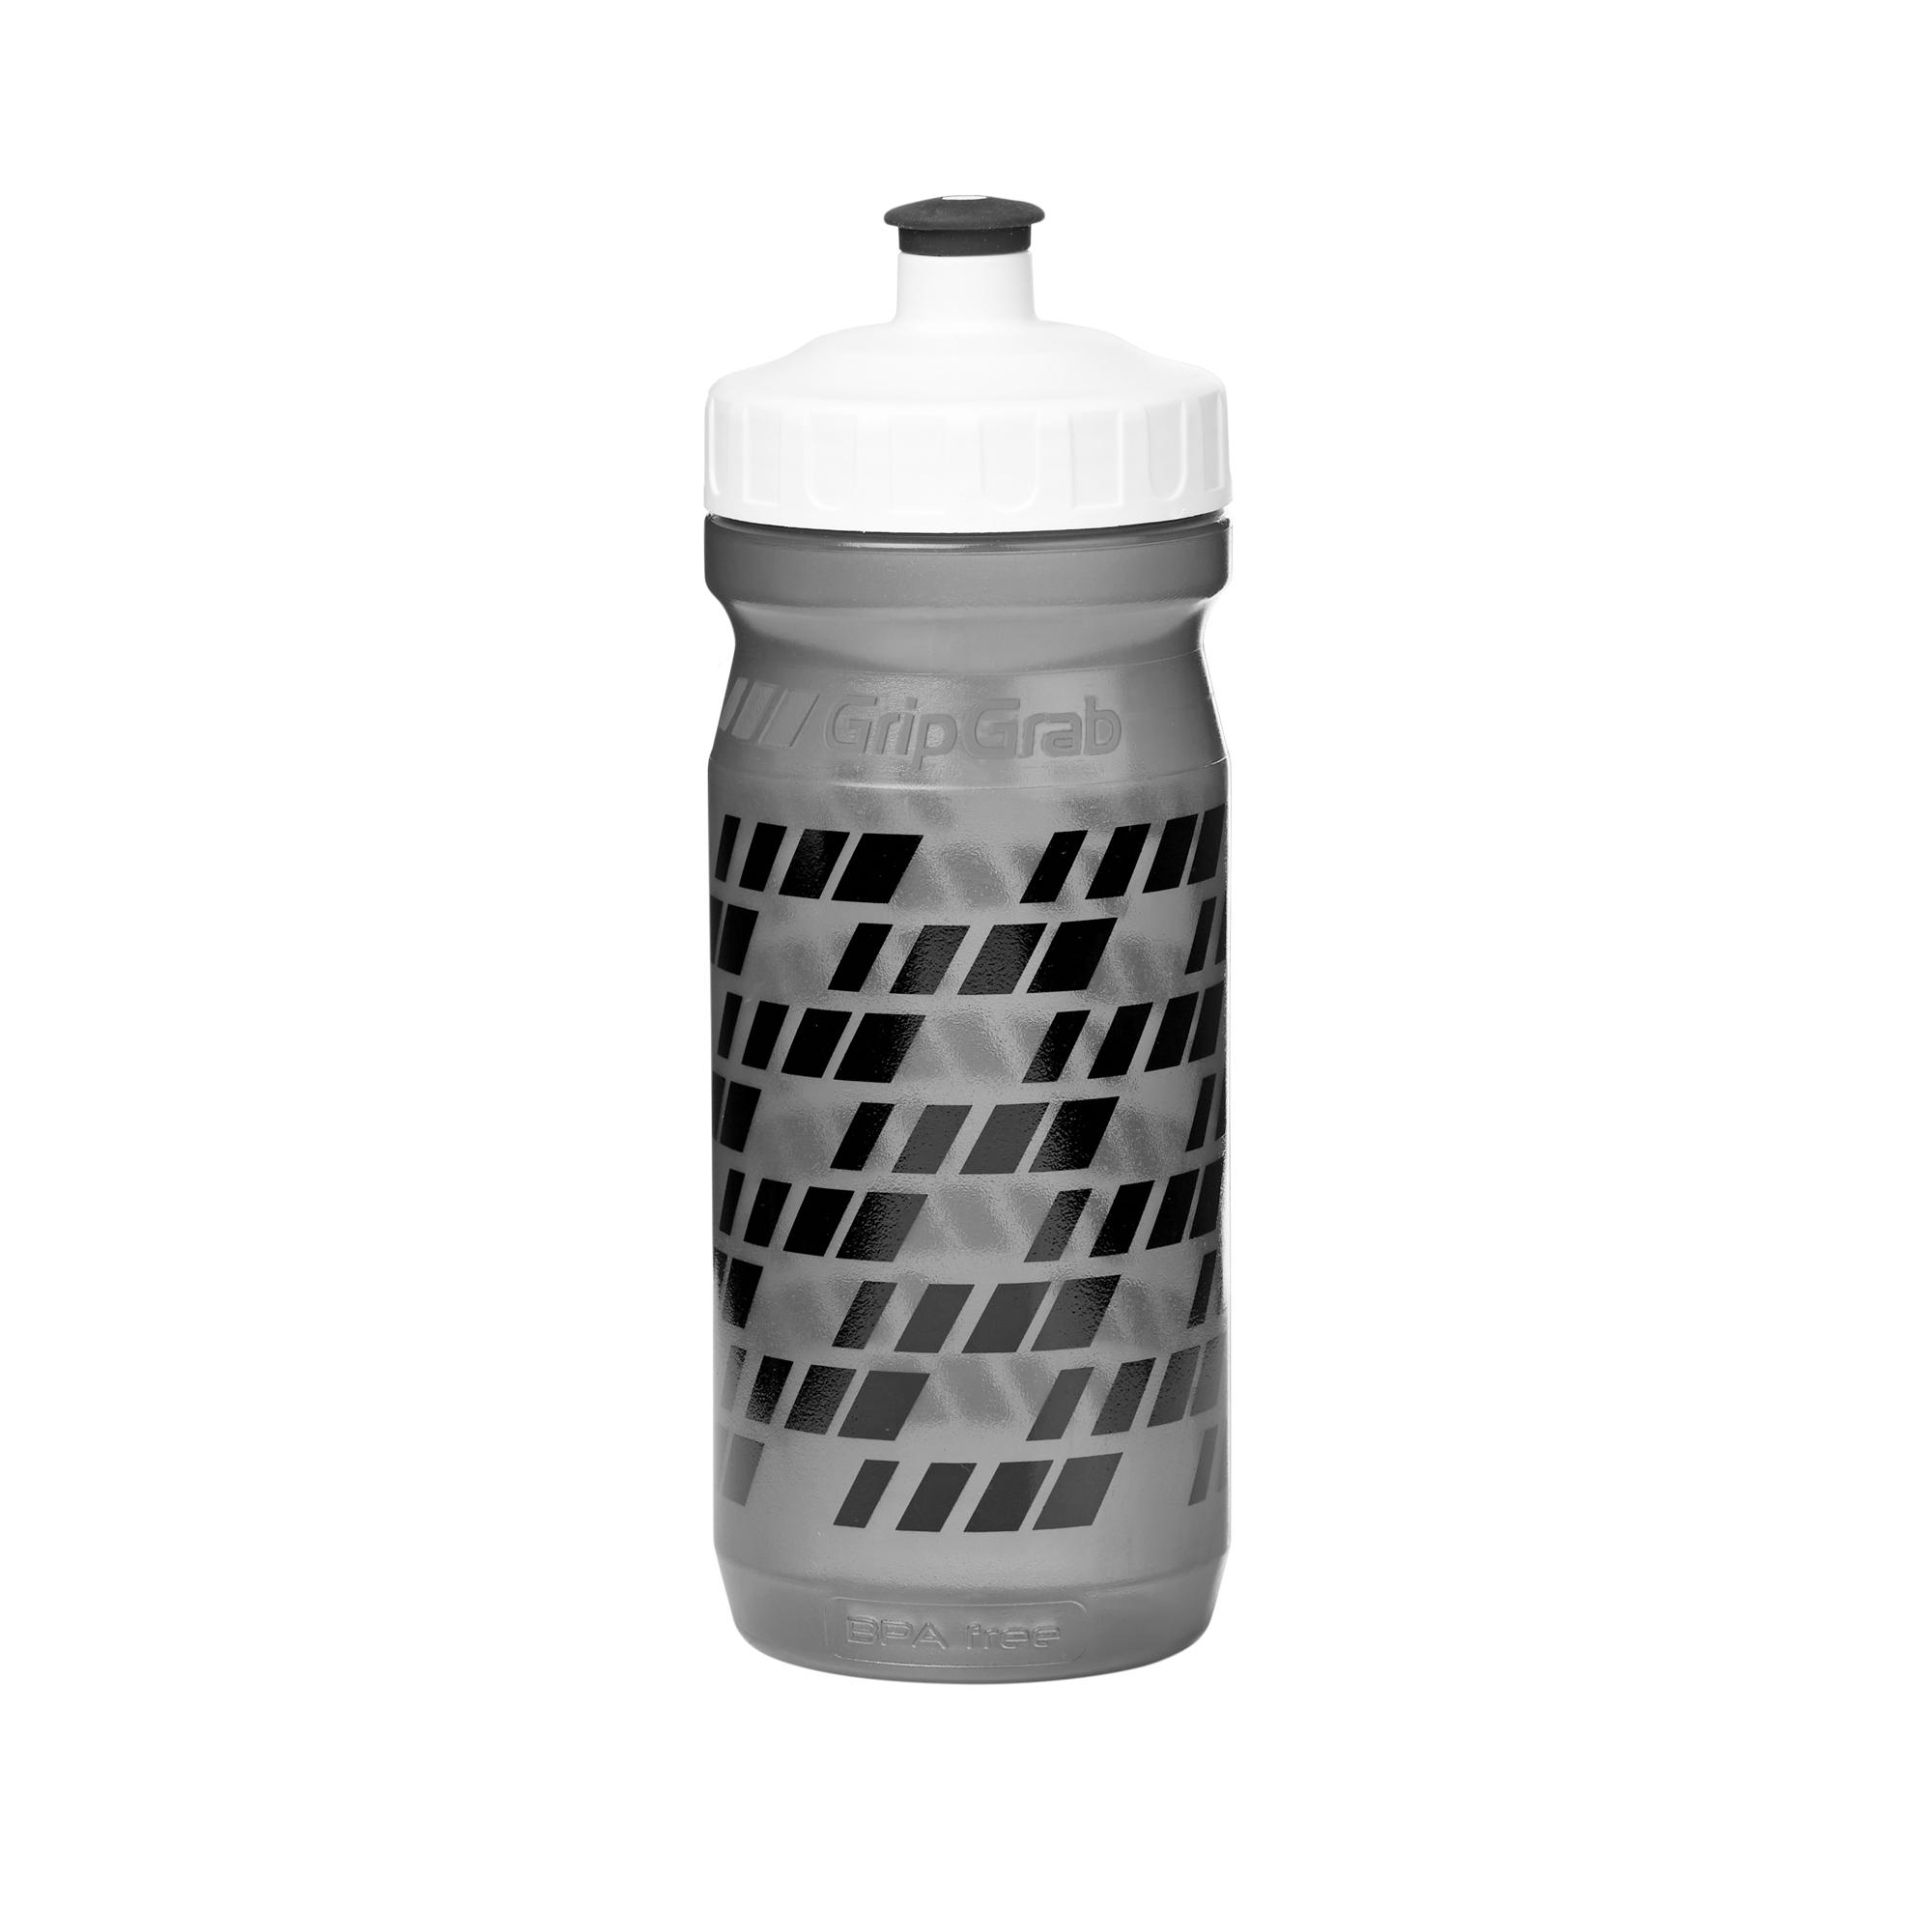 Afbeelding GripGrab Bidon Wit / 2018 Drinking Bottle Small  600 ml